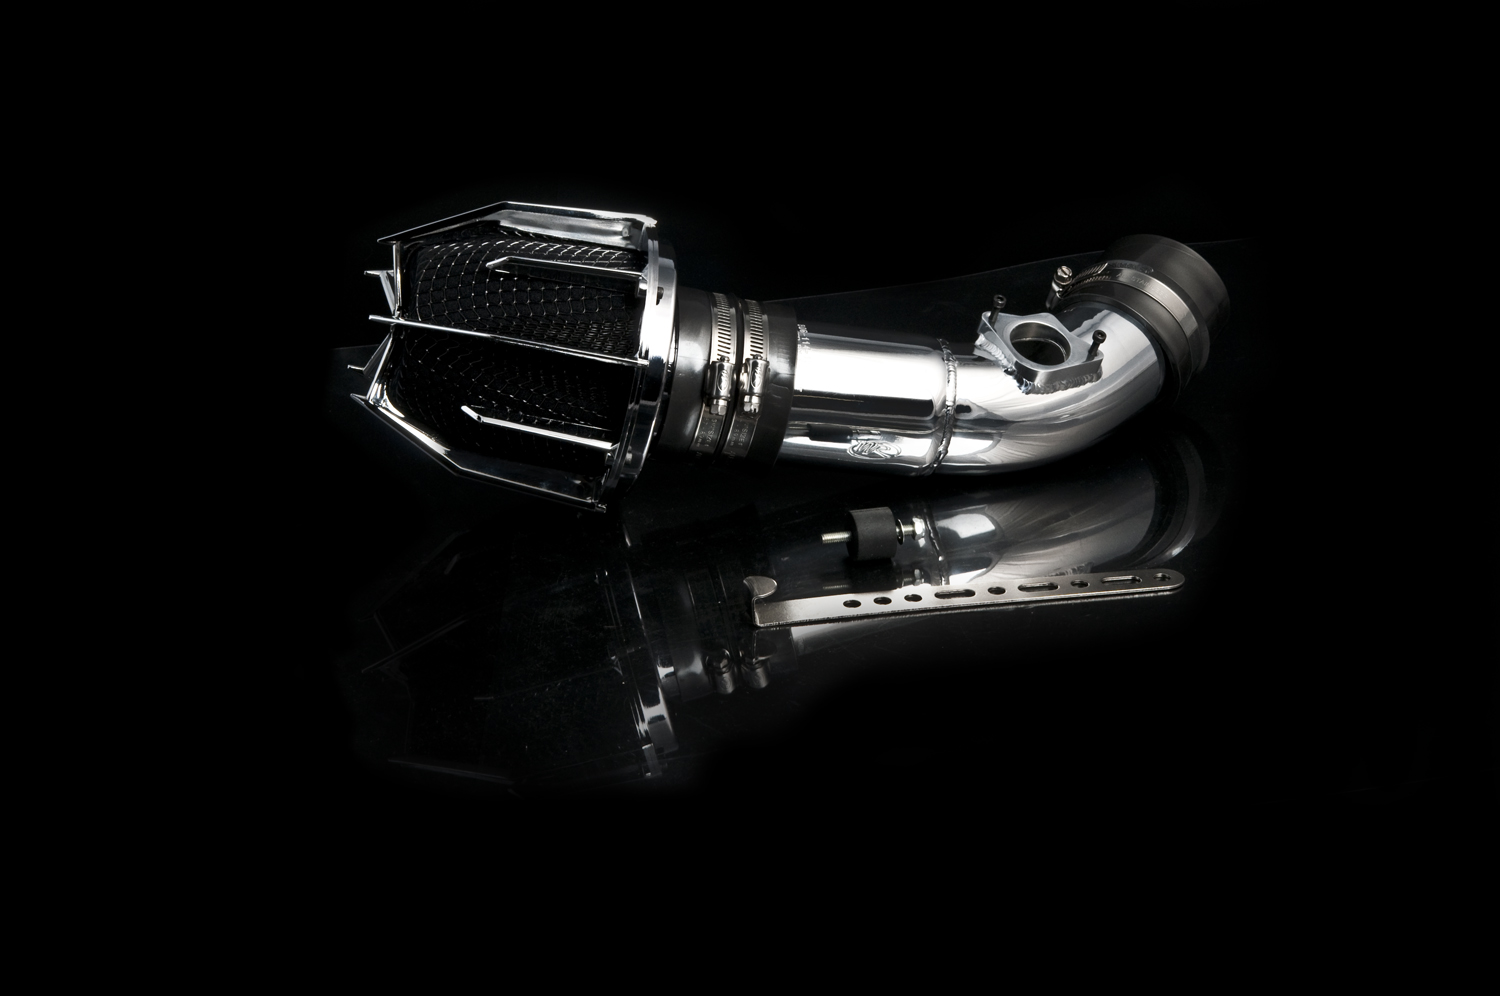 Subaru WRX 2002-2007 Weapon-R Dragon Air Intake